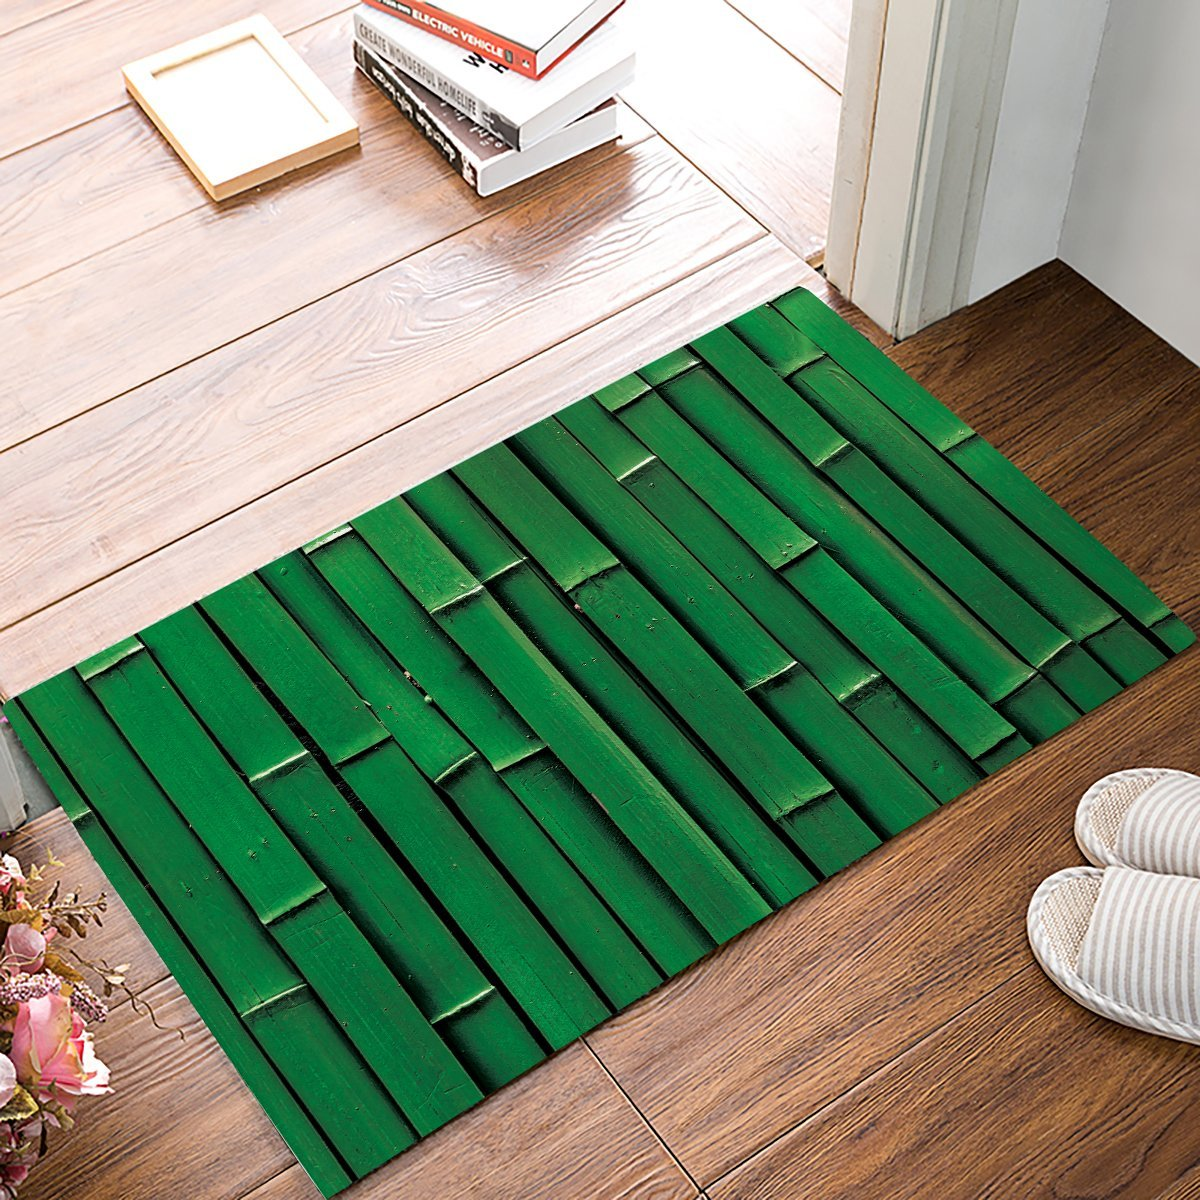 Green Bamboo Door Mats Kitchen Floor Bath Entrance Rug Mat Absorbent Indoor Bathroom Dec ...